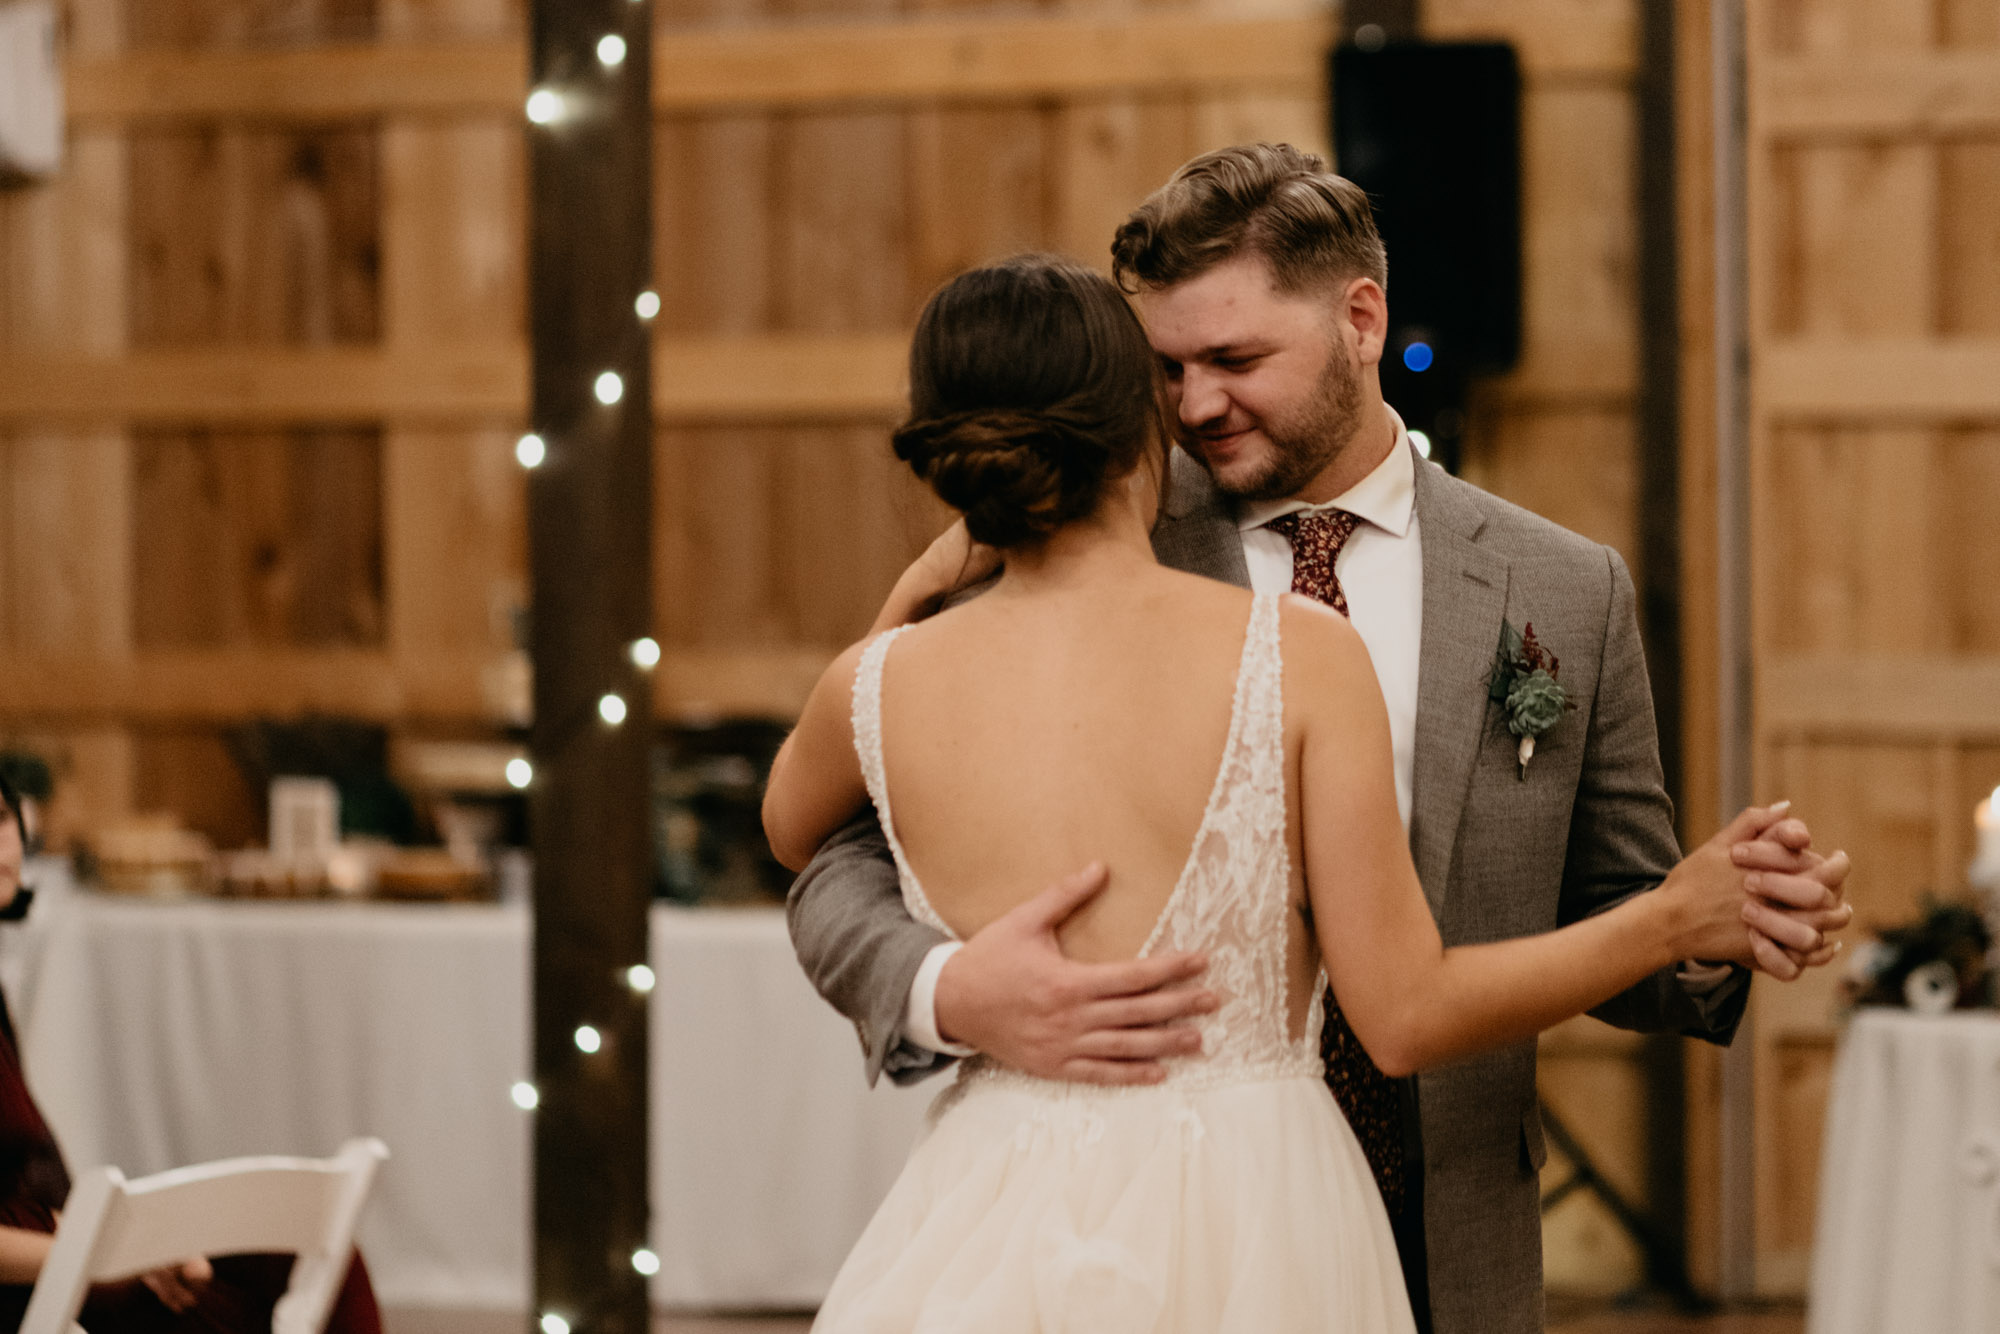 bride and groom sharing their first dance on their wedding day